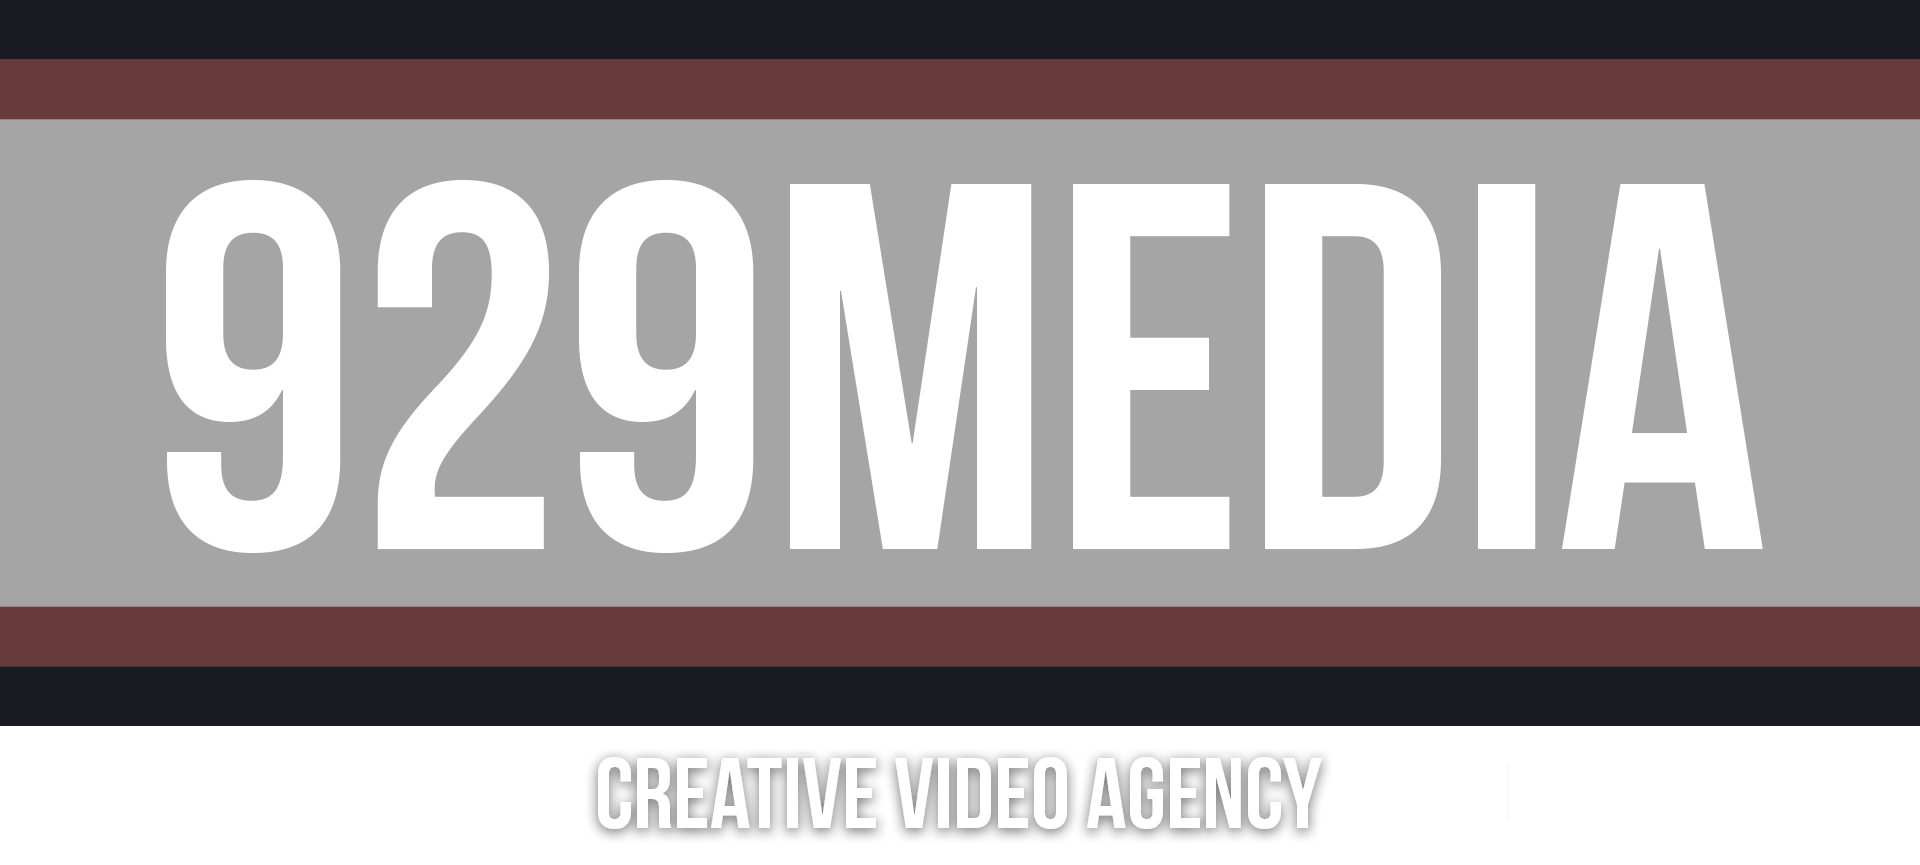 929Media Logo_Qwilr_CreativeVideoAgency (1).png